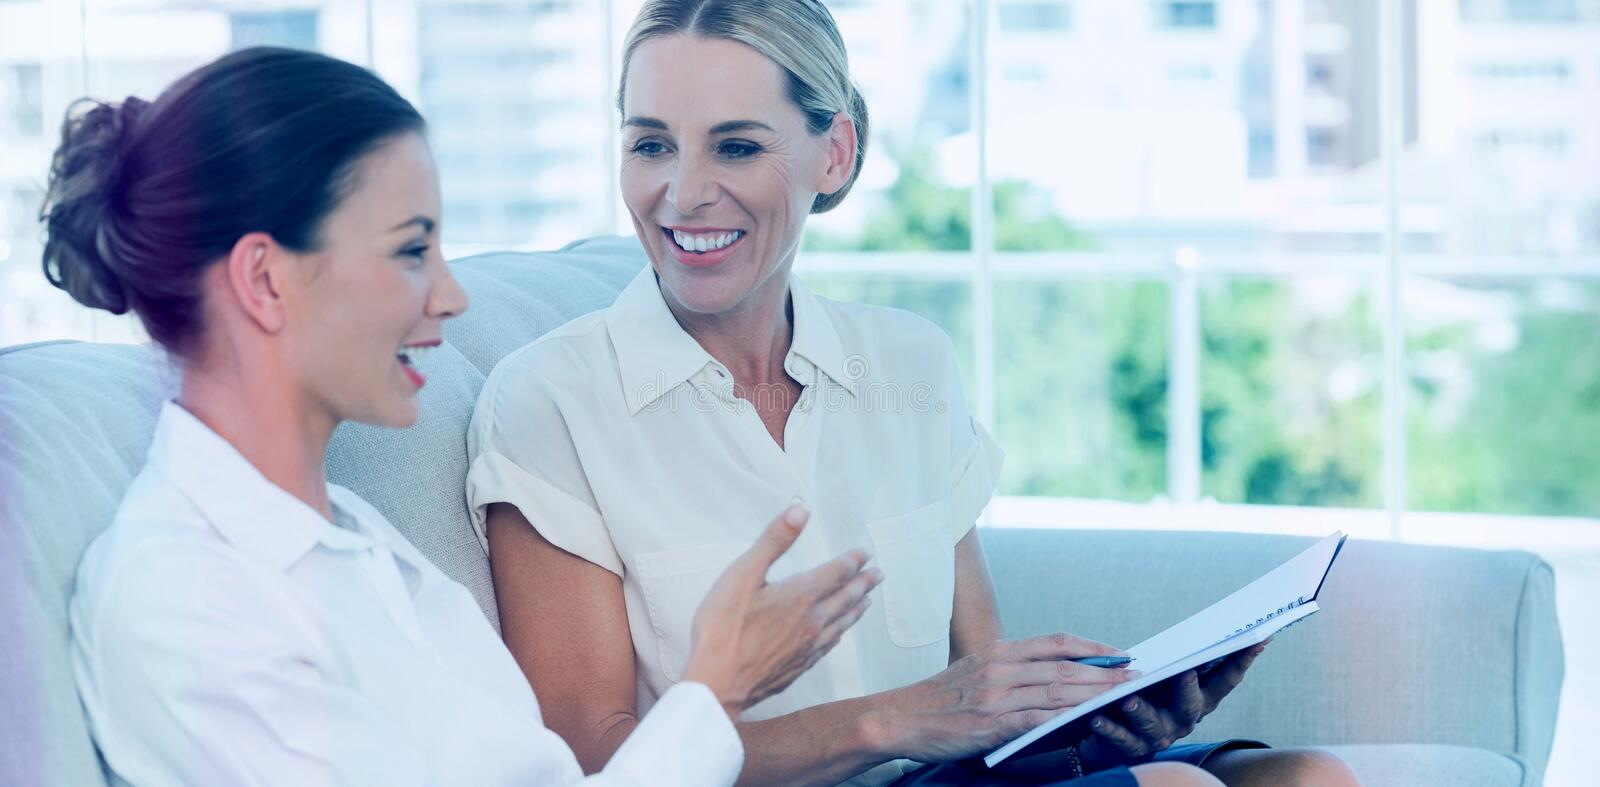 Smiling businesswomen talking and working together stock illustration